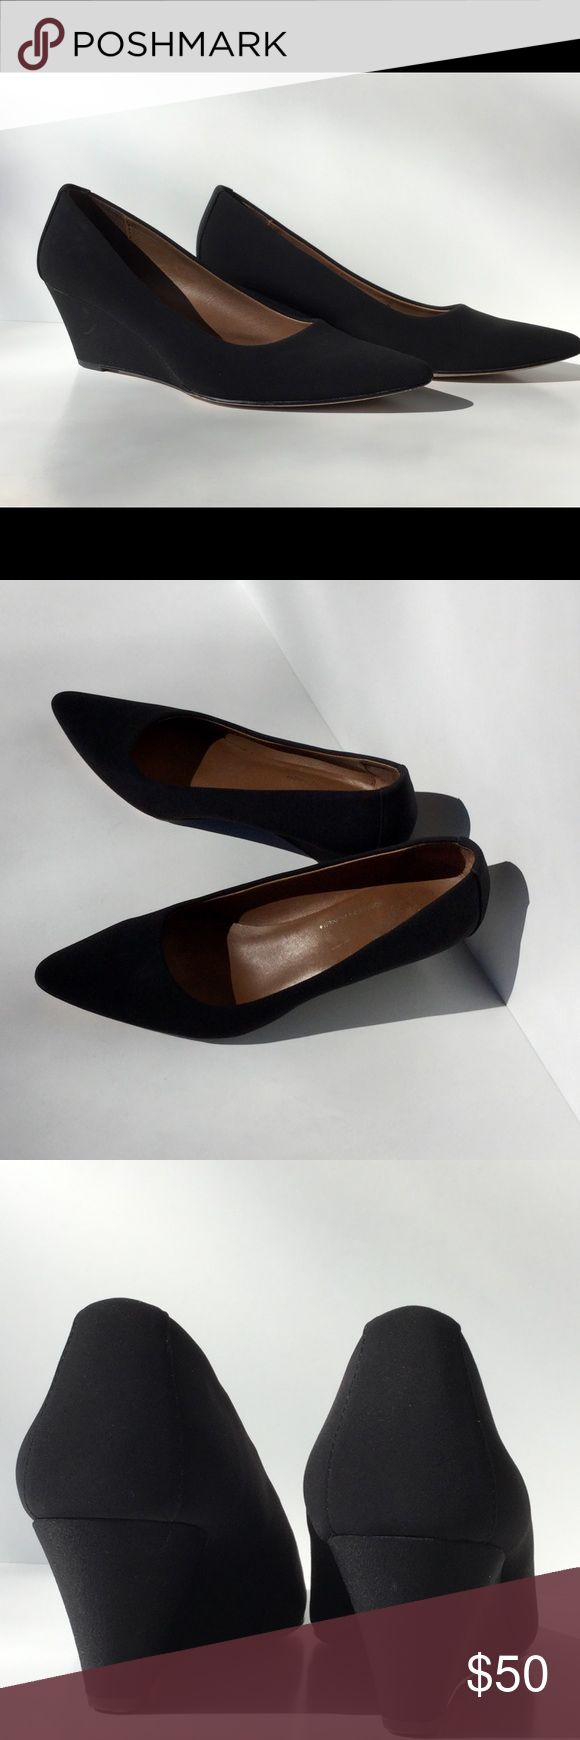 Donald J. Pliner Black Wedge Heel Donald J. Pliner dark black fabric wedge. Pump look in a comfortable wedge with a 2 1/2 inch heel.   Donald J. Pliner quality with a leather sole. Vero Cuoio. Size 8M.   In great shape. Worn a few times. Donald J. Pliner Shoes Wedges